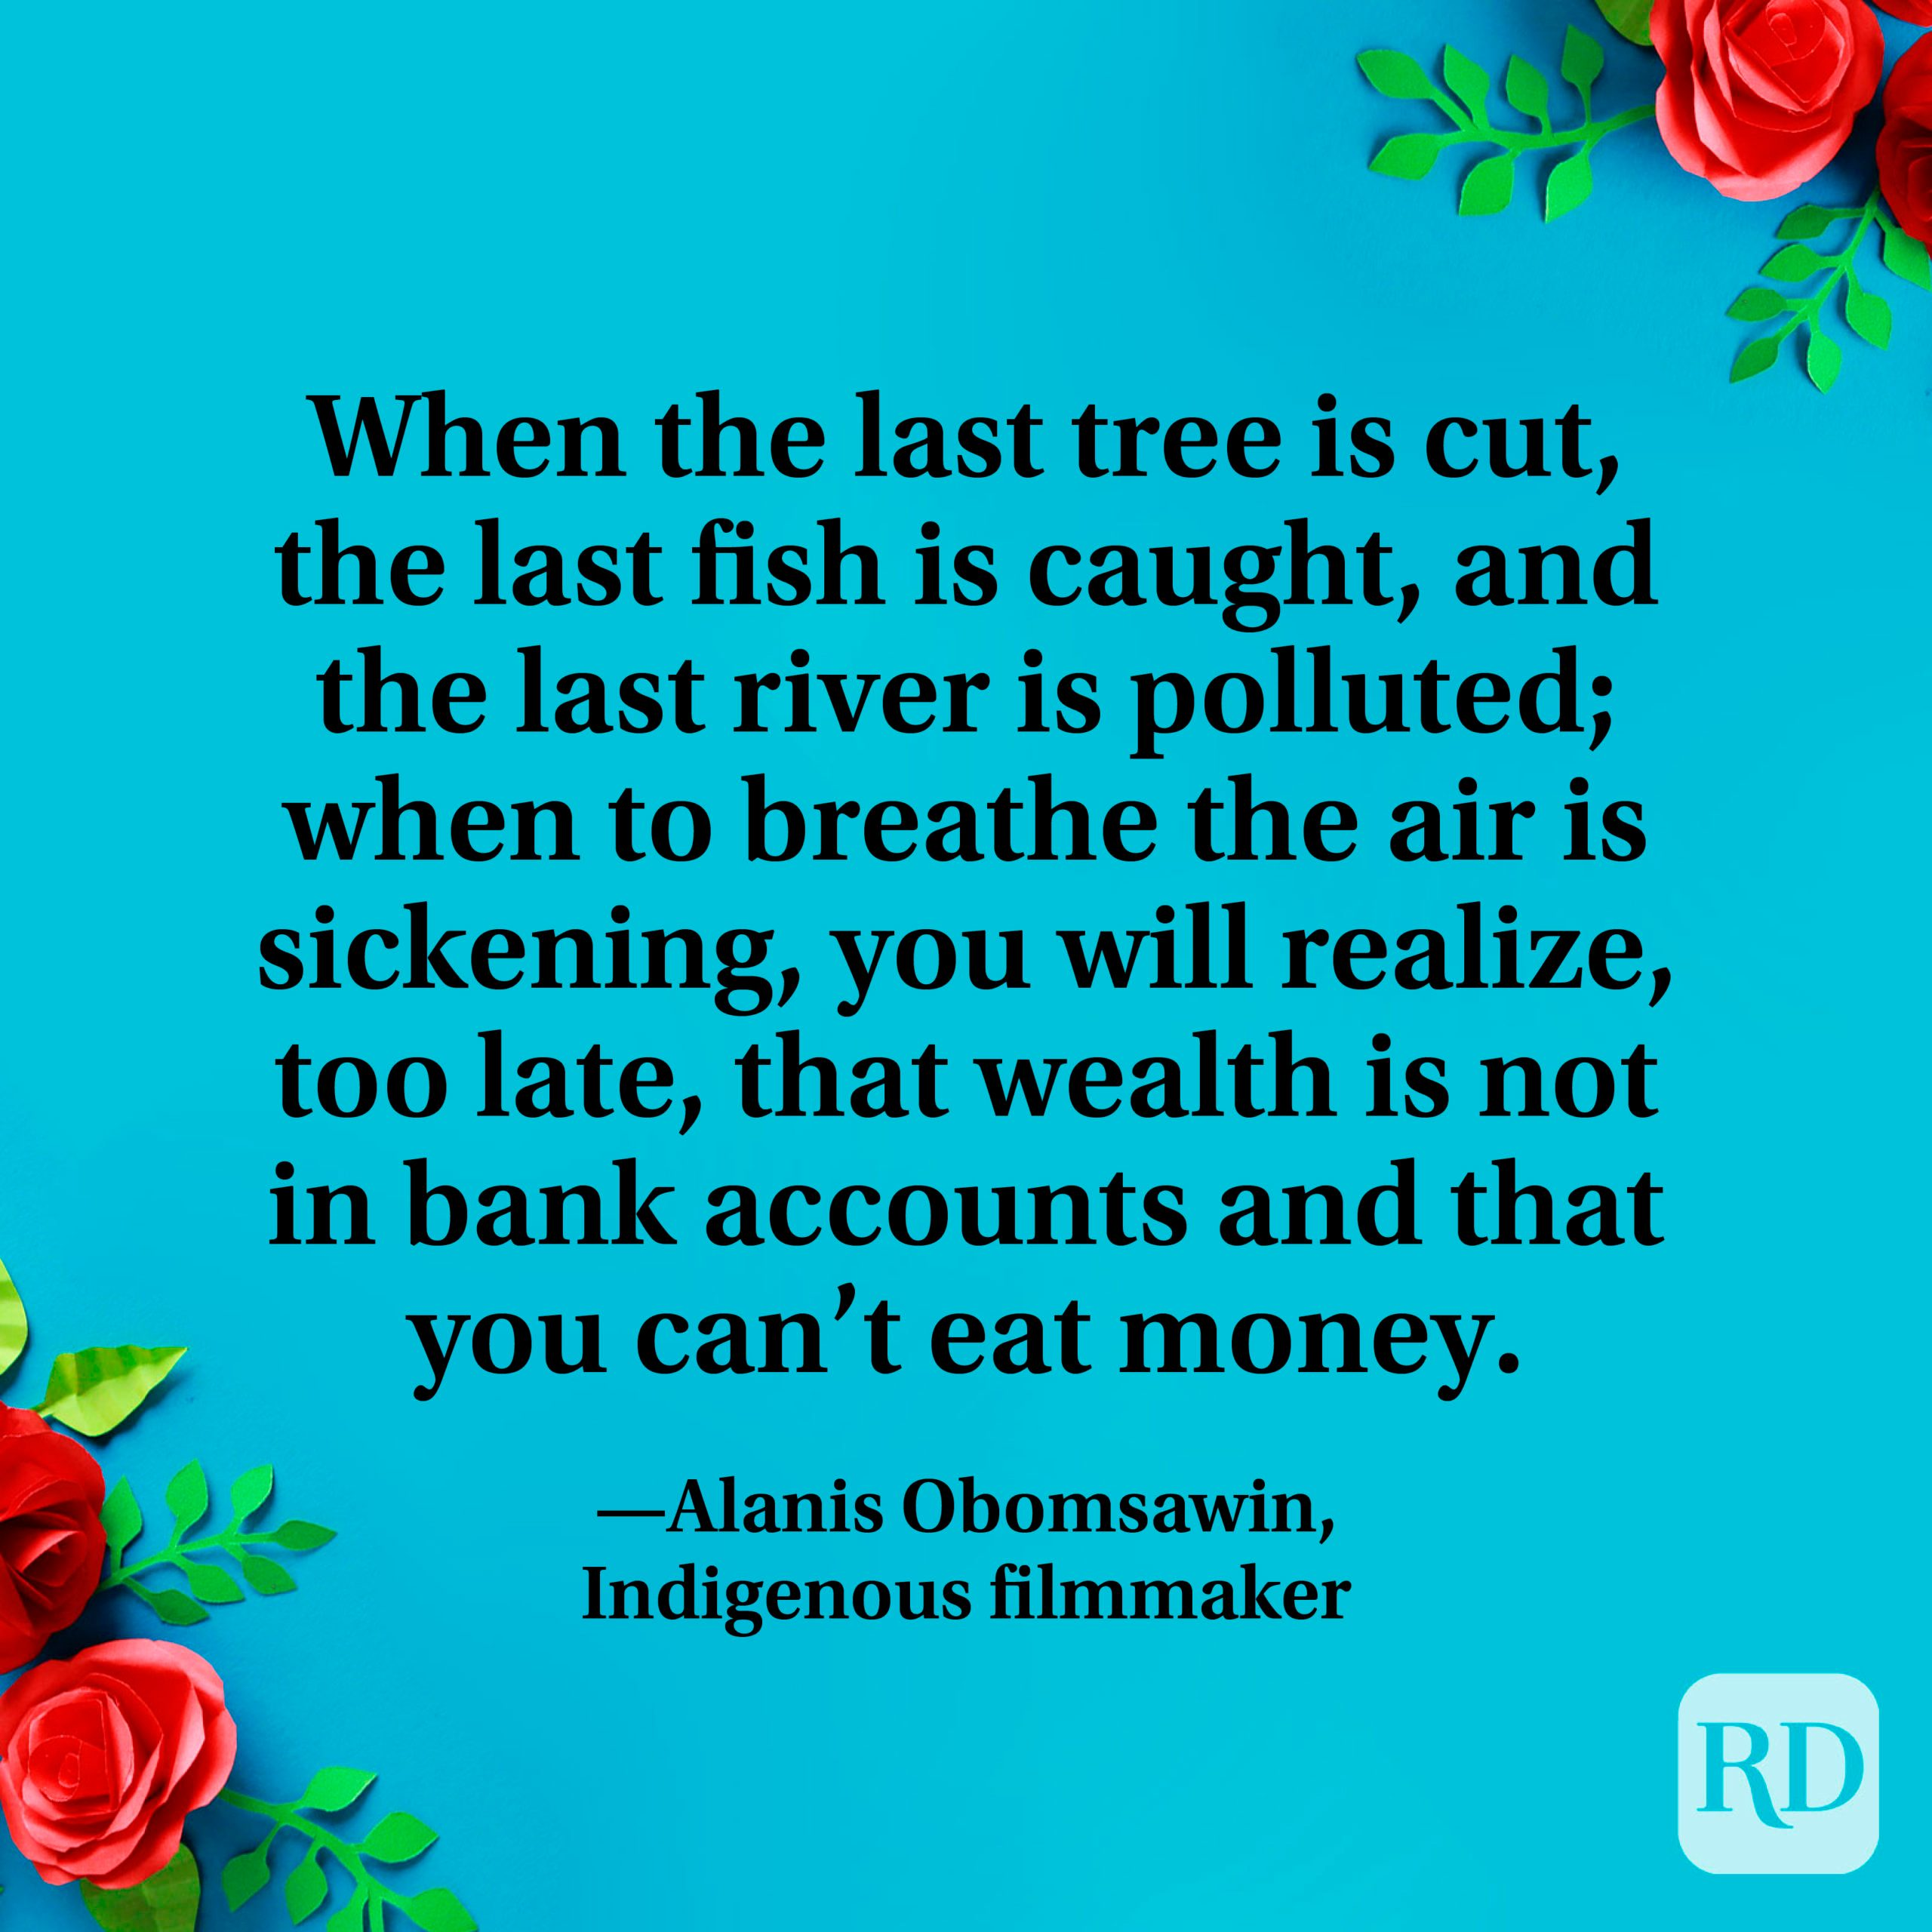 """""""When the last tree is cut, the last fish is caught, and the last river is polluted; when to breathe the air is sickening, you will realize, too late, that wealth is not in bank accounts and that you can't eat money."""" —Alanis Obomsawin, Indigenous filmmaker"""